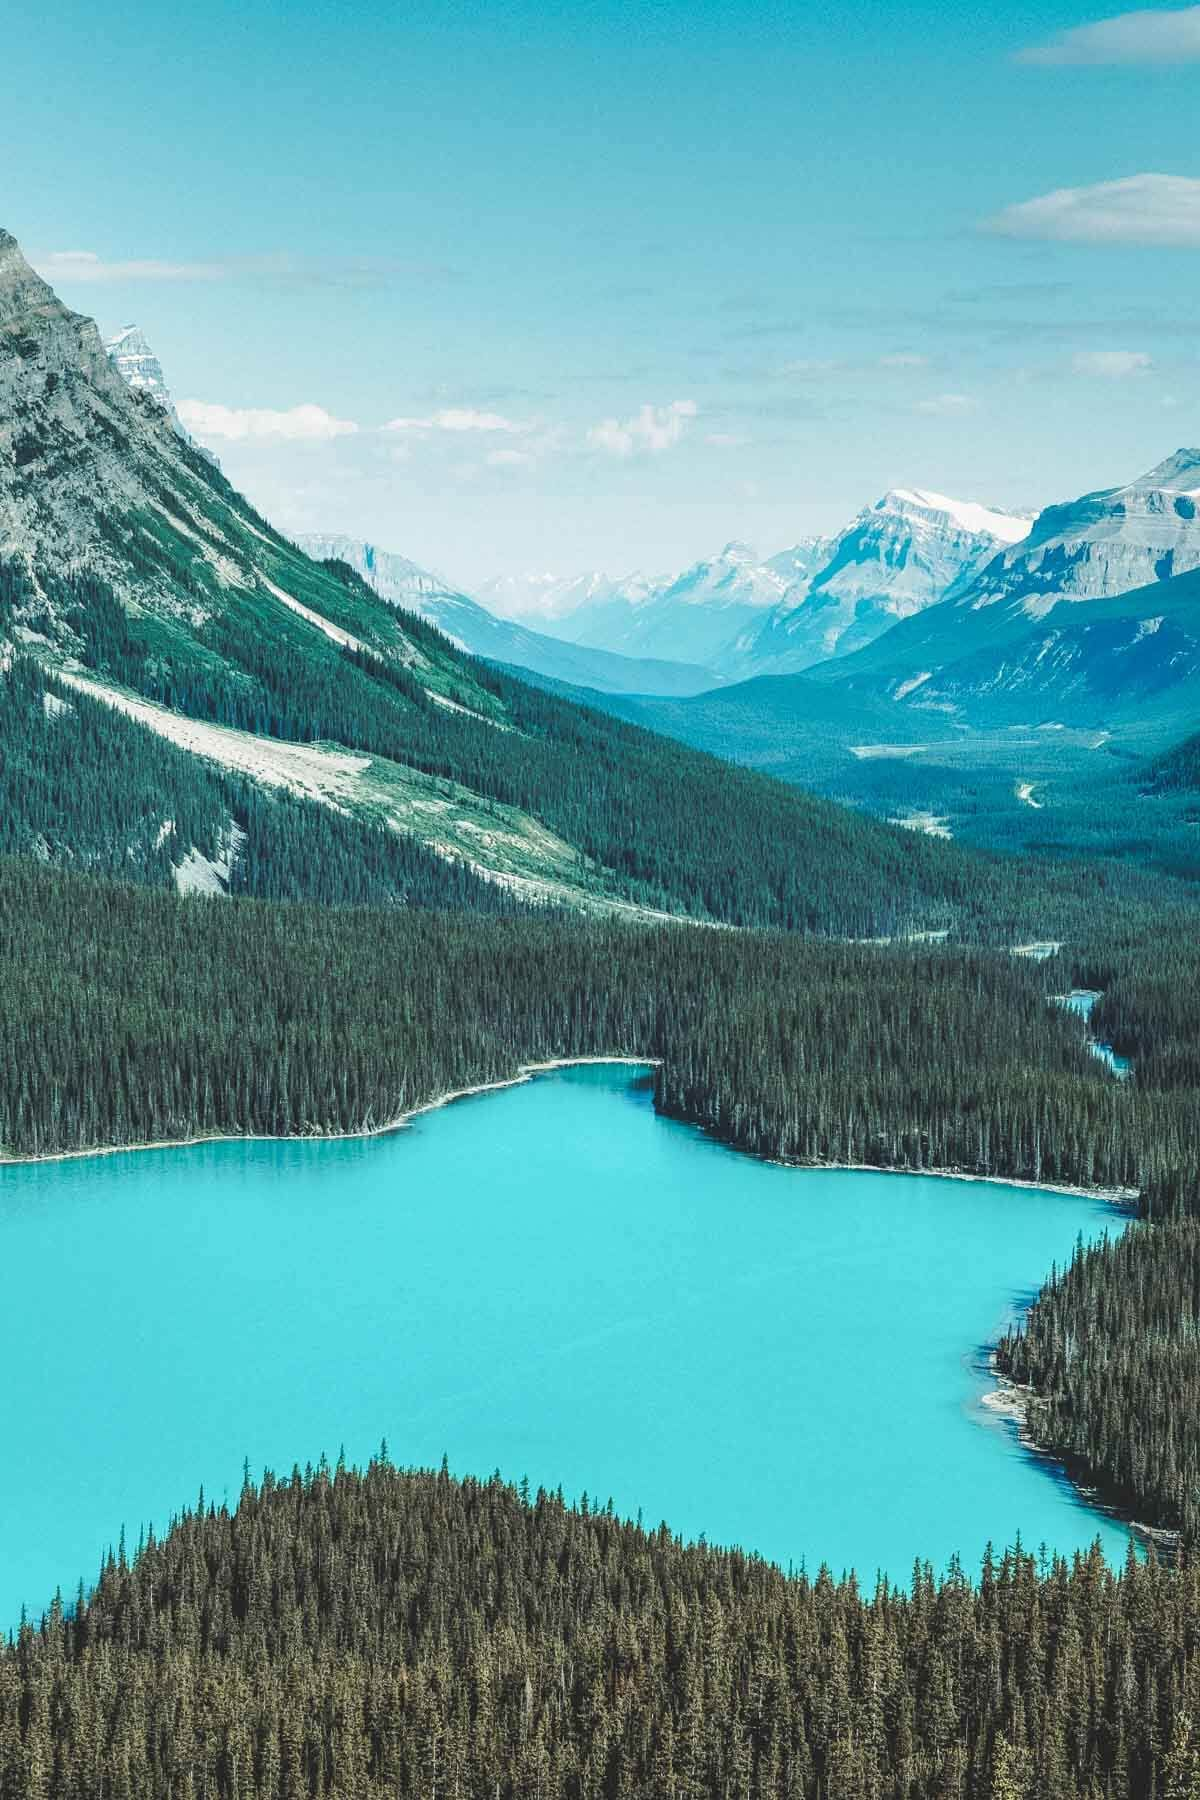 12 Places You Can't Miss in Alberta, Canada (With images